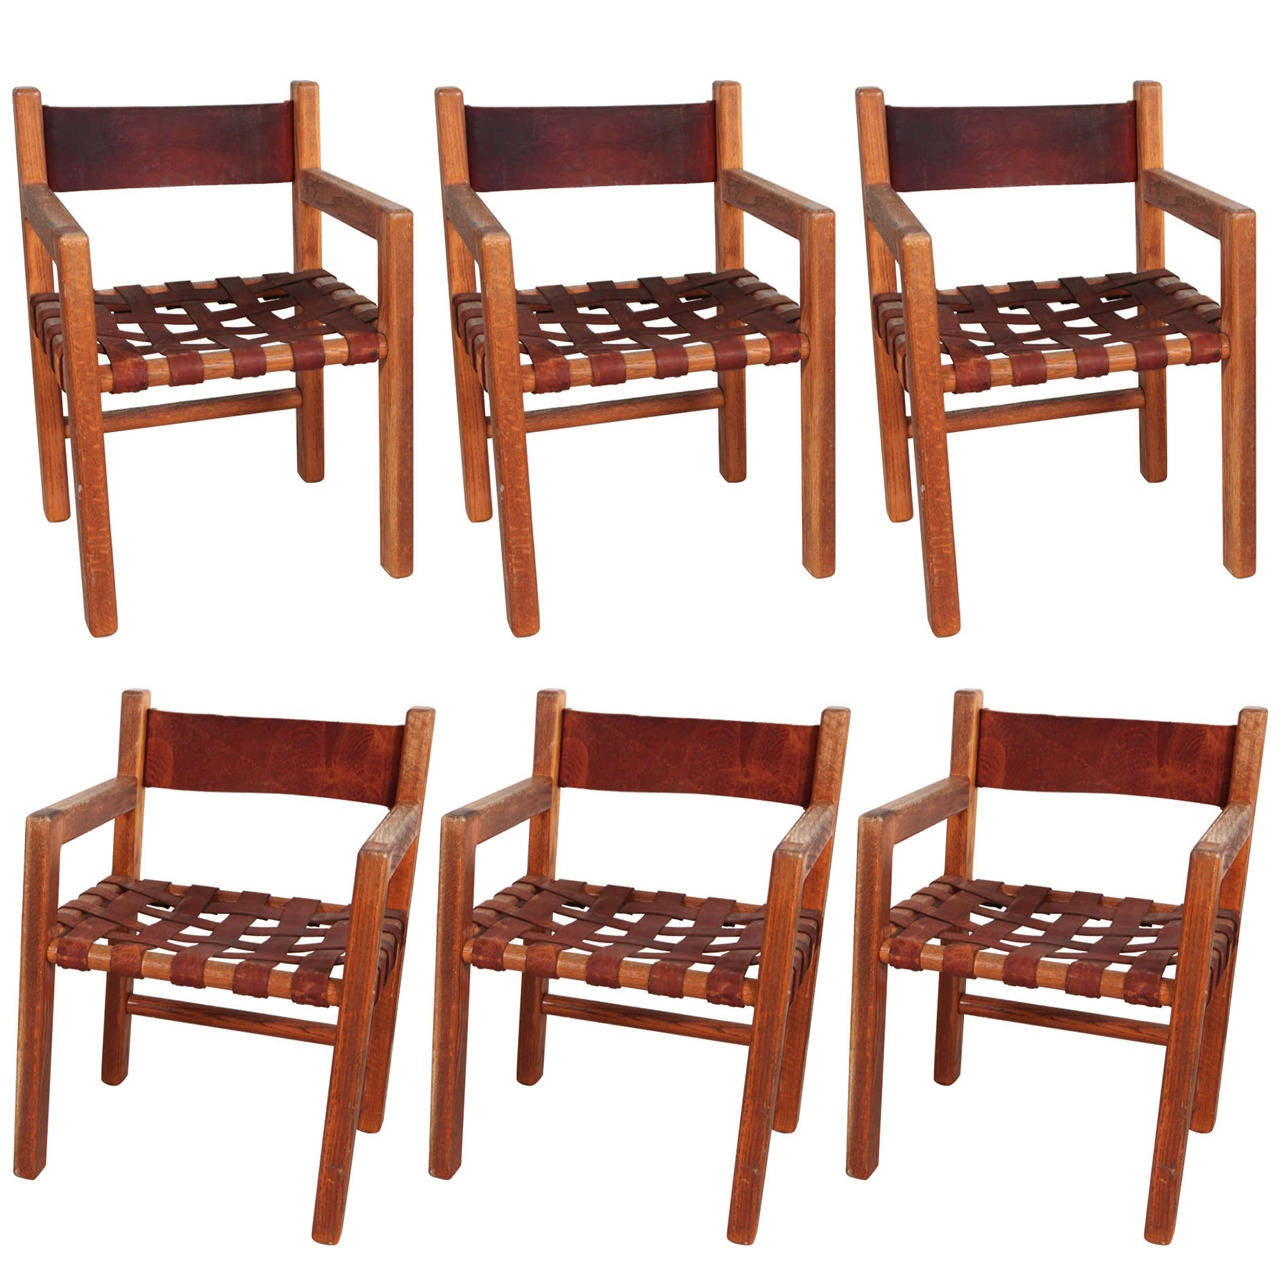 woven dining chairs black fitted chair covers set of six wood and saddle leather at